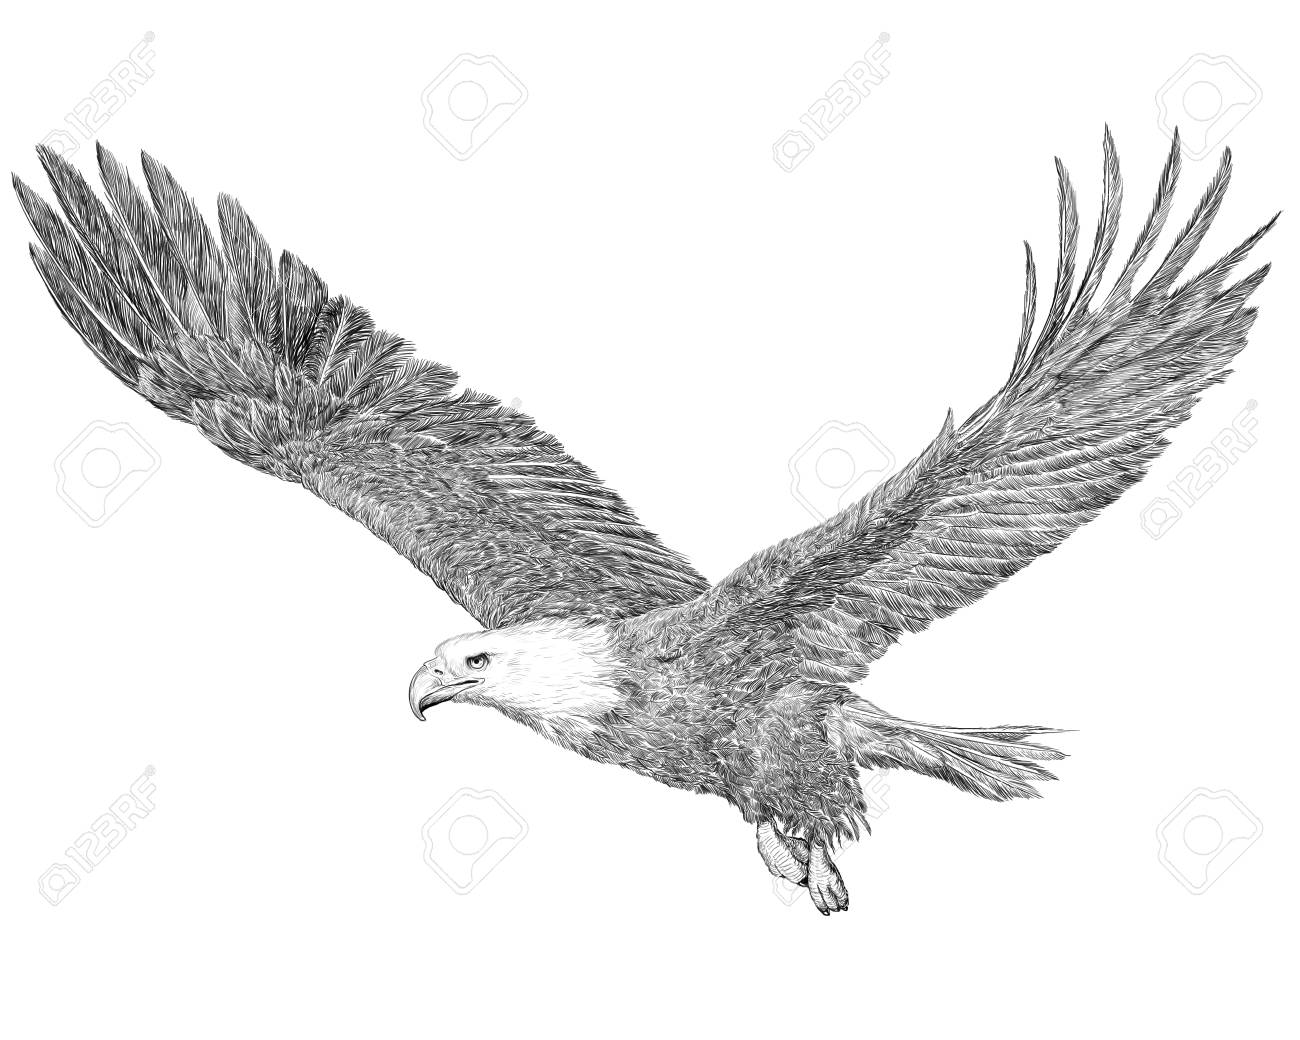 Flying Eagle Drawings